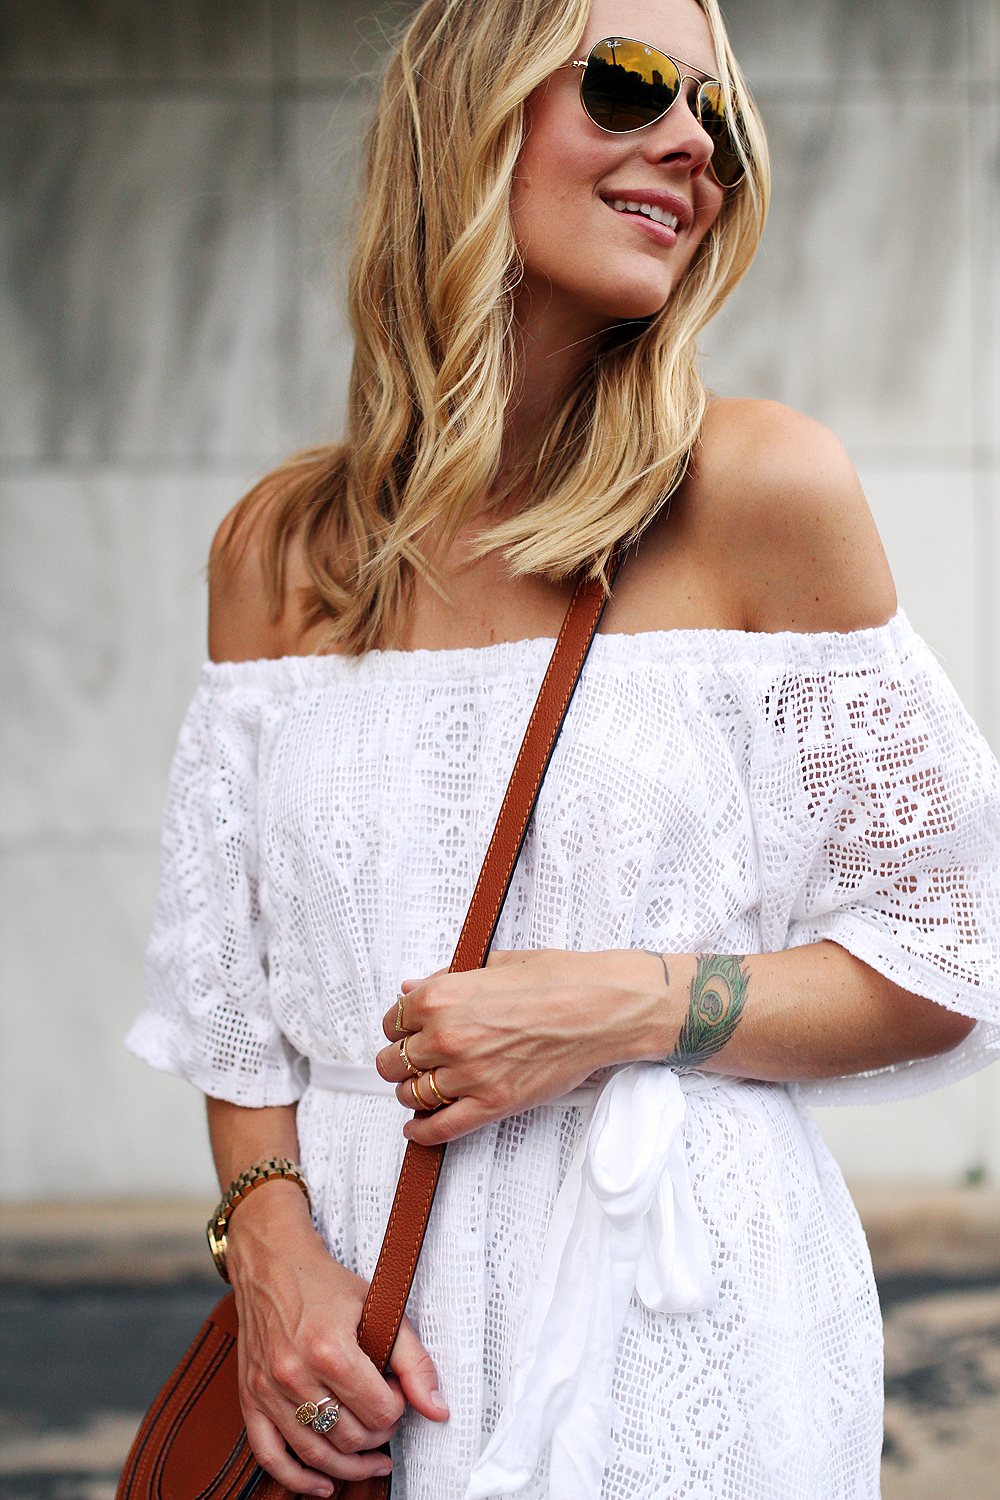 fashion-jackson-banana-republic-white-lace-off-the-shoulder-dress-ray-ban-gold-aviator-sunglasses-chloe-tan-marcie-crossbody